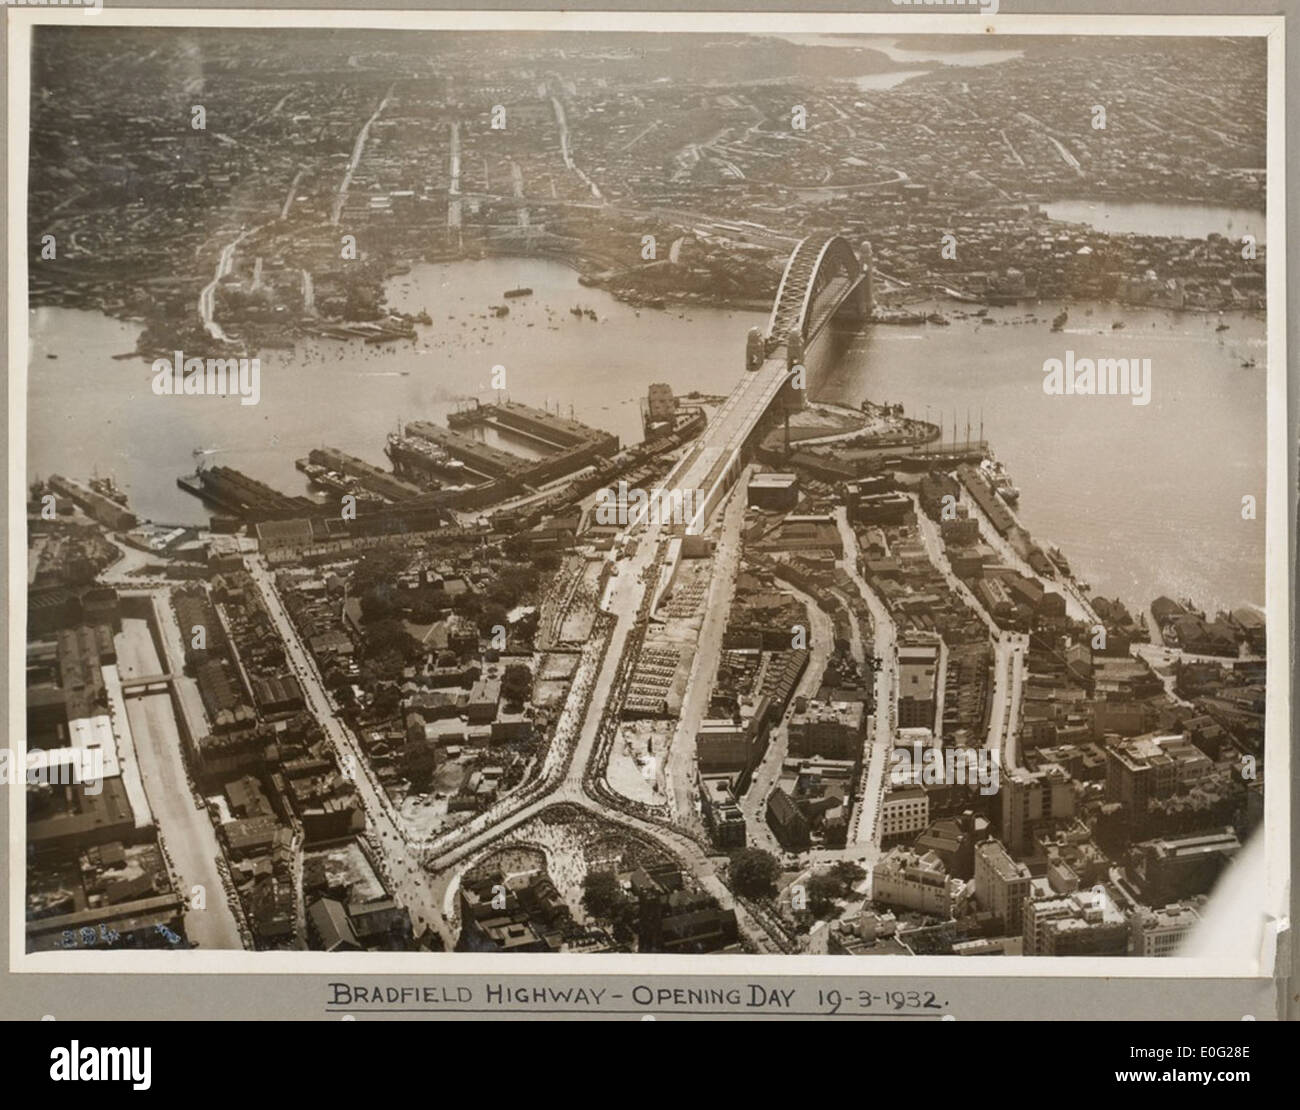 Bradfield Highway and Sydney Harbour Bridge on its opening day, 19 March 1932 - Stock Image